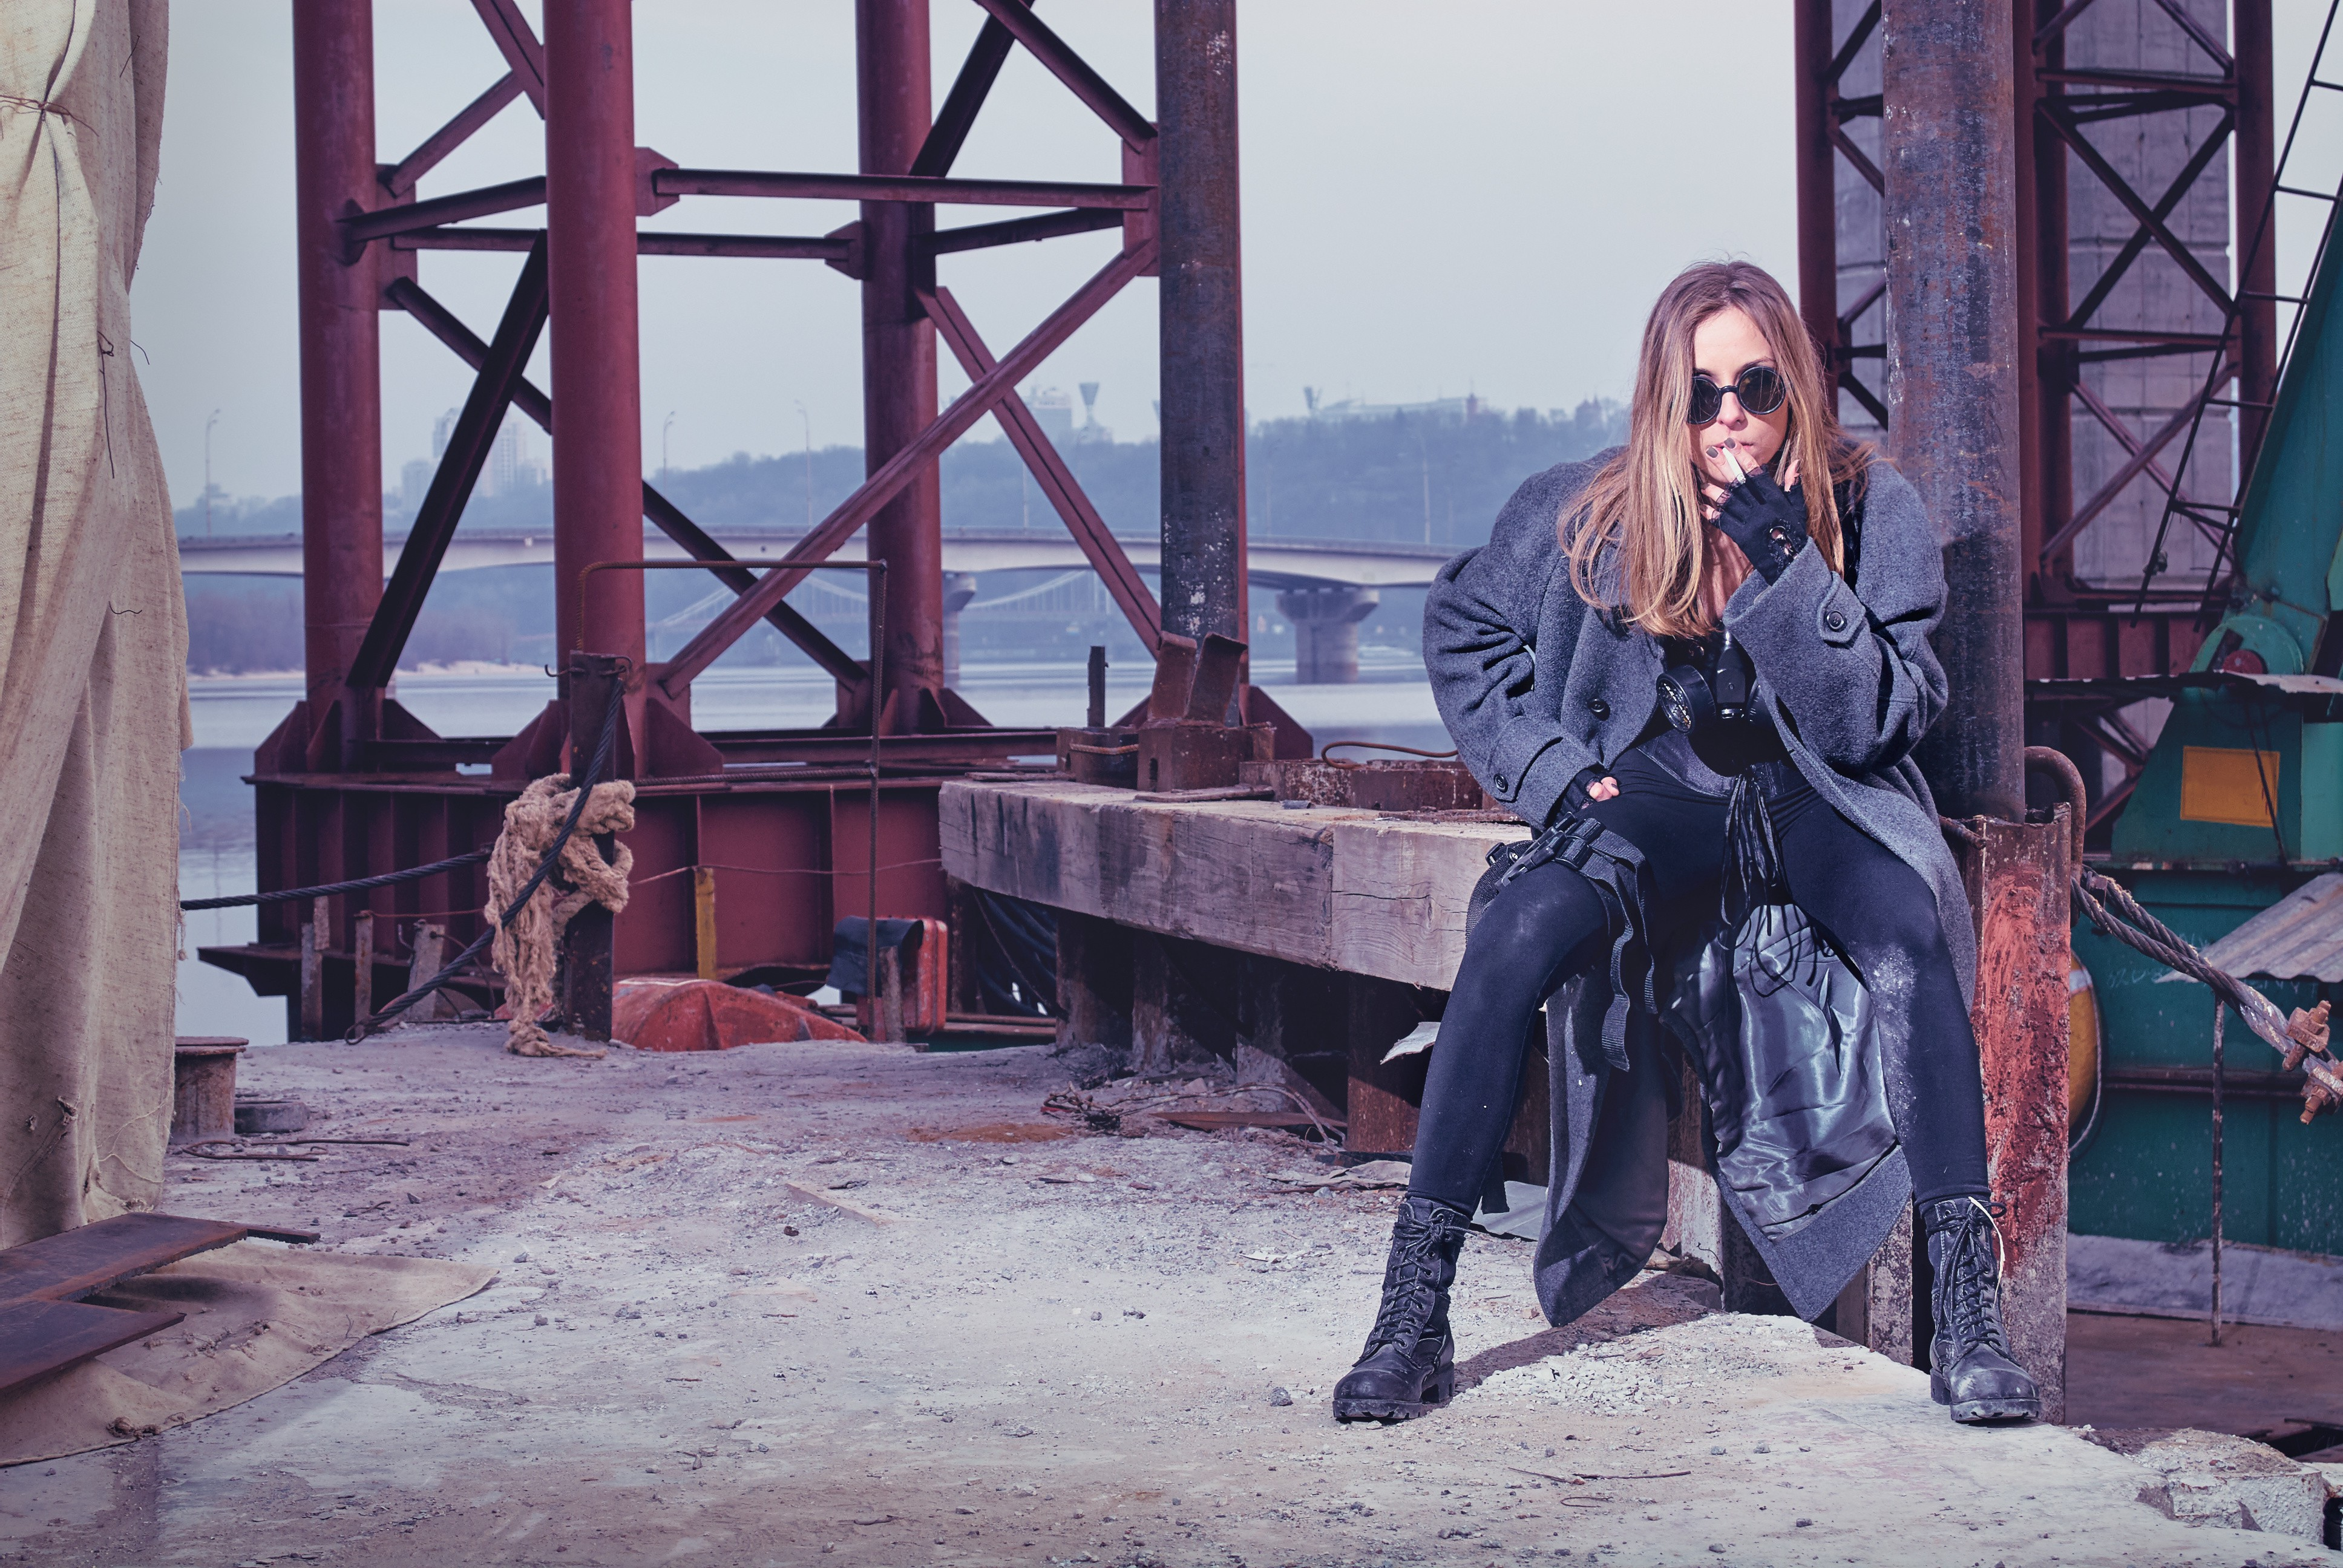 Woman in trench coat, dark clothing and sunglasses waiting for someone under a bridge